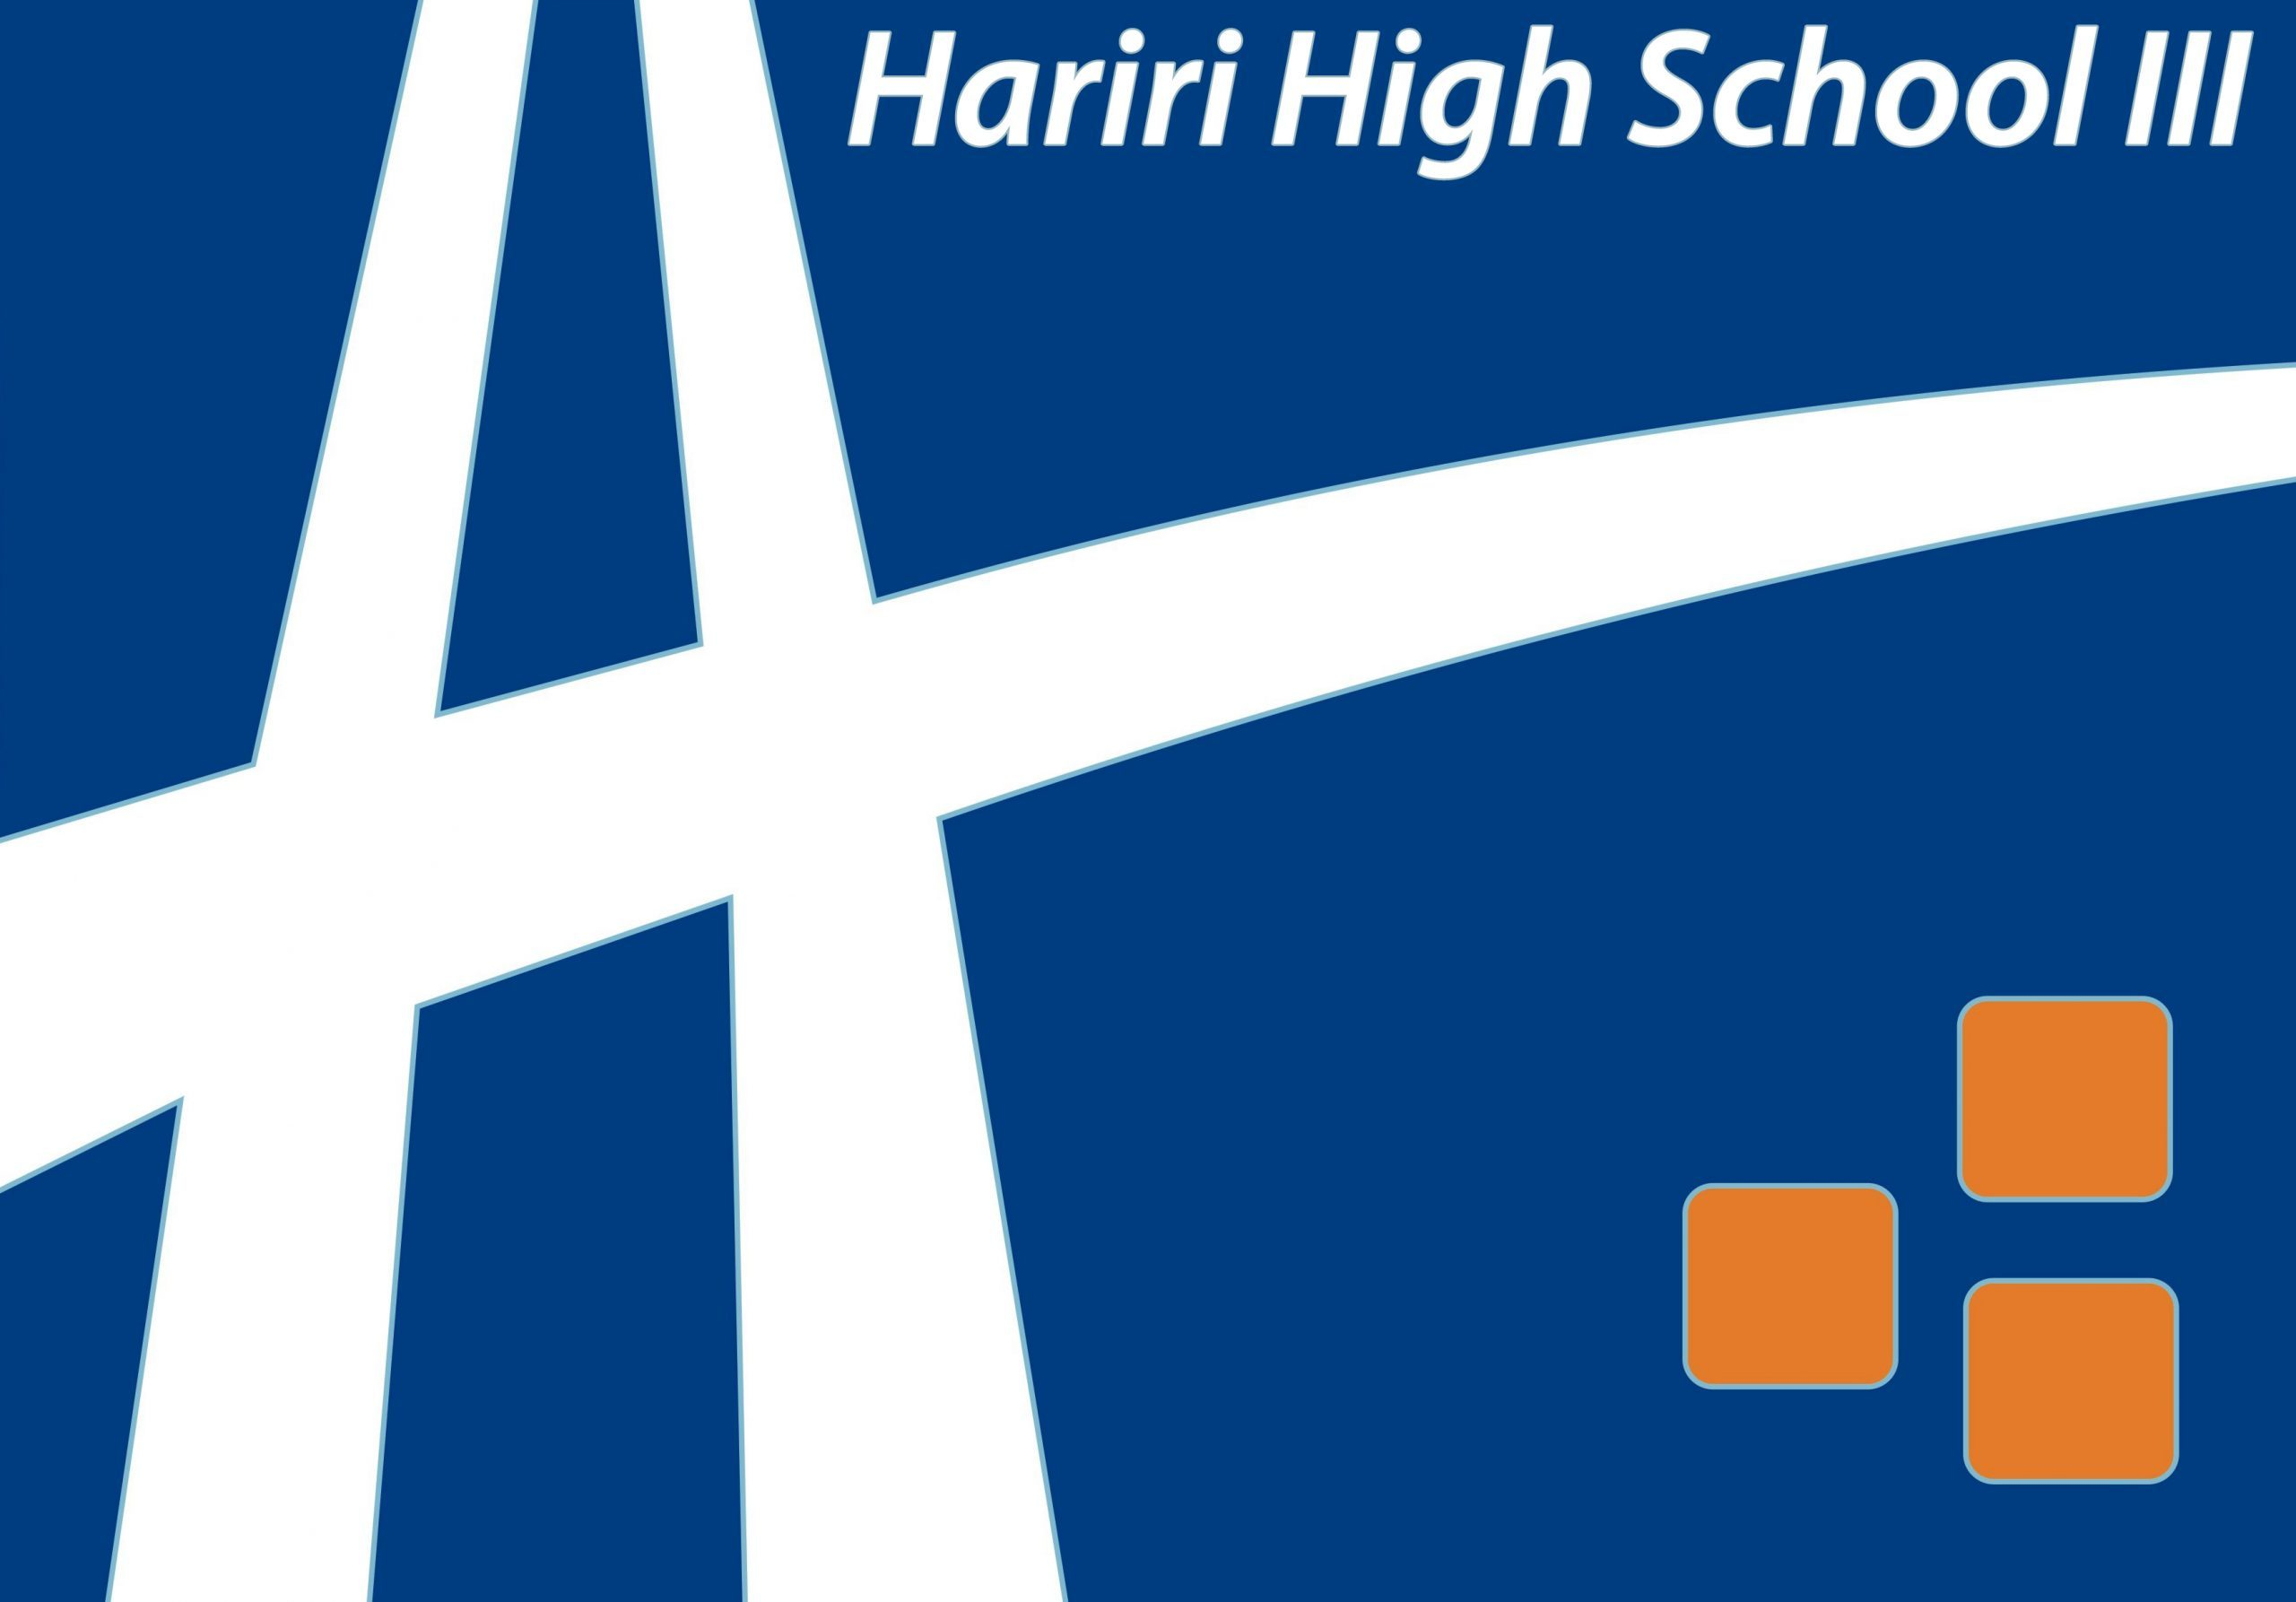 Hariri High School 3